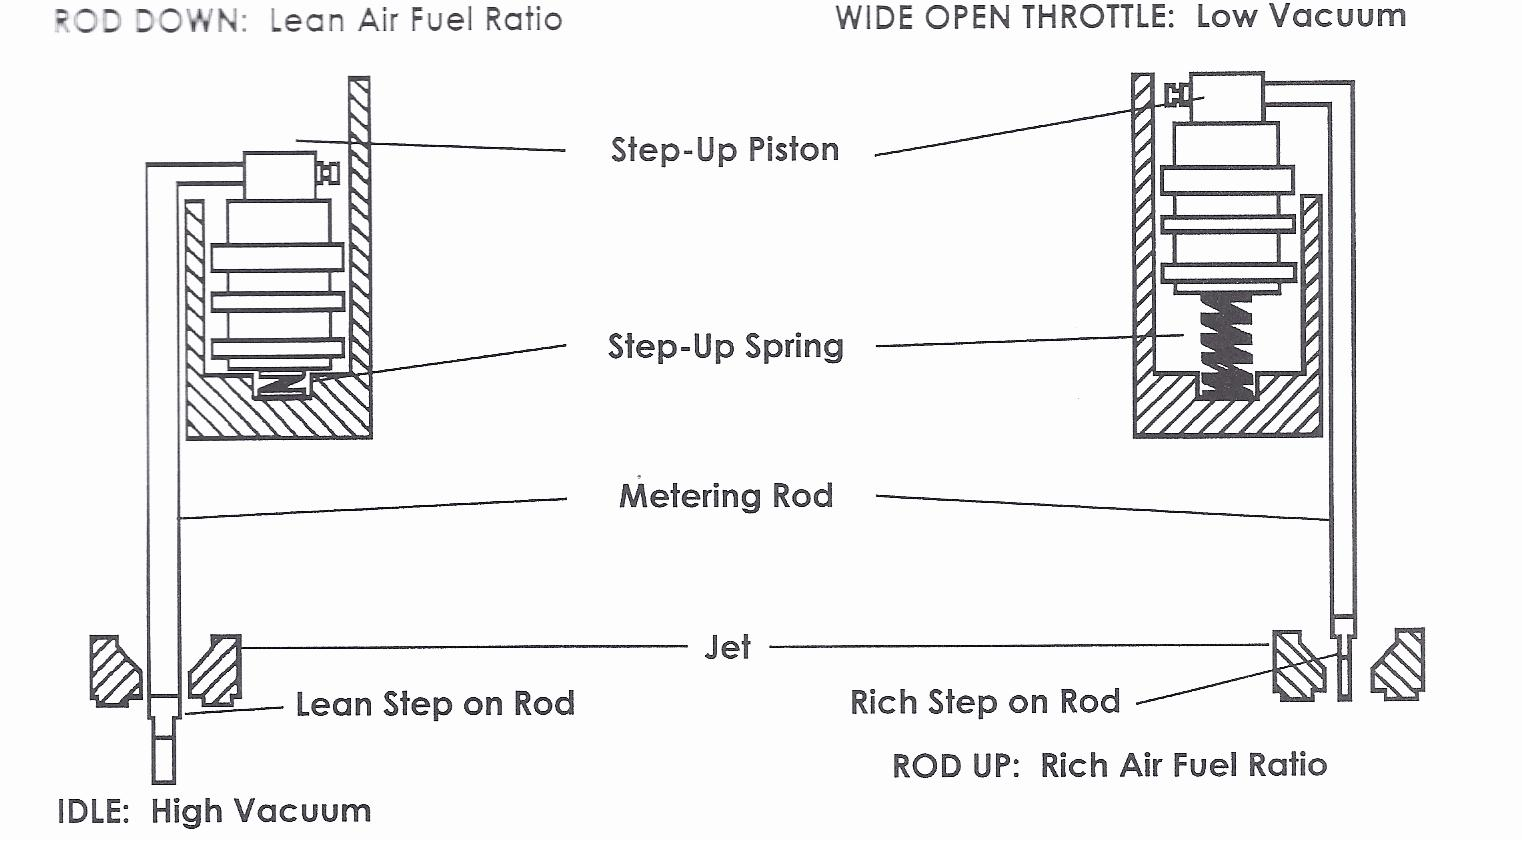 Carter AFB Jets & Metering Rods